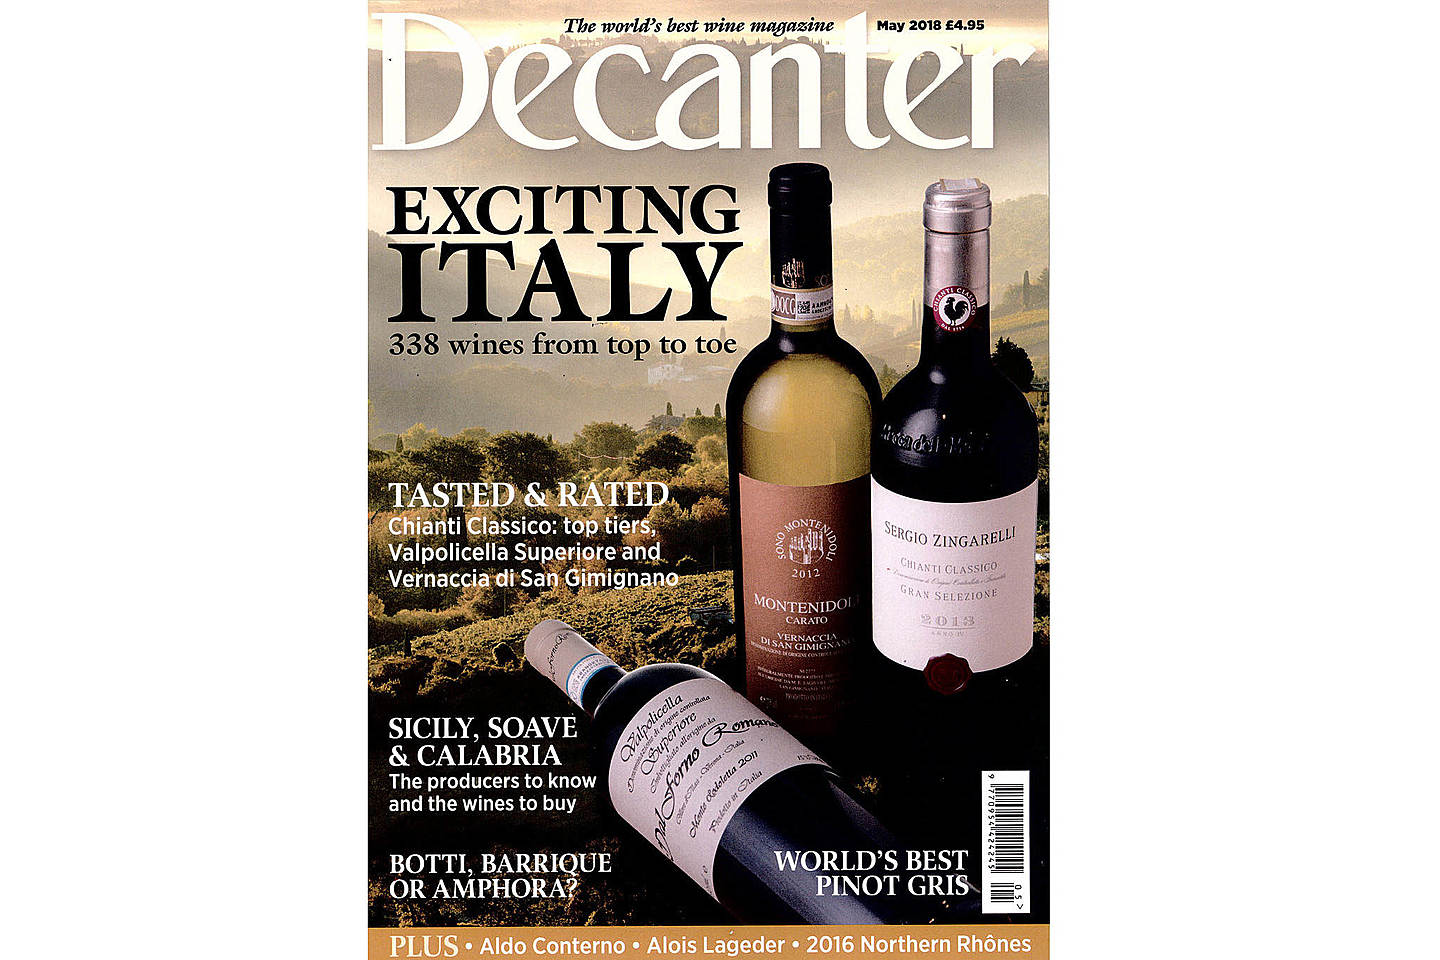 Decanter - May 2018